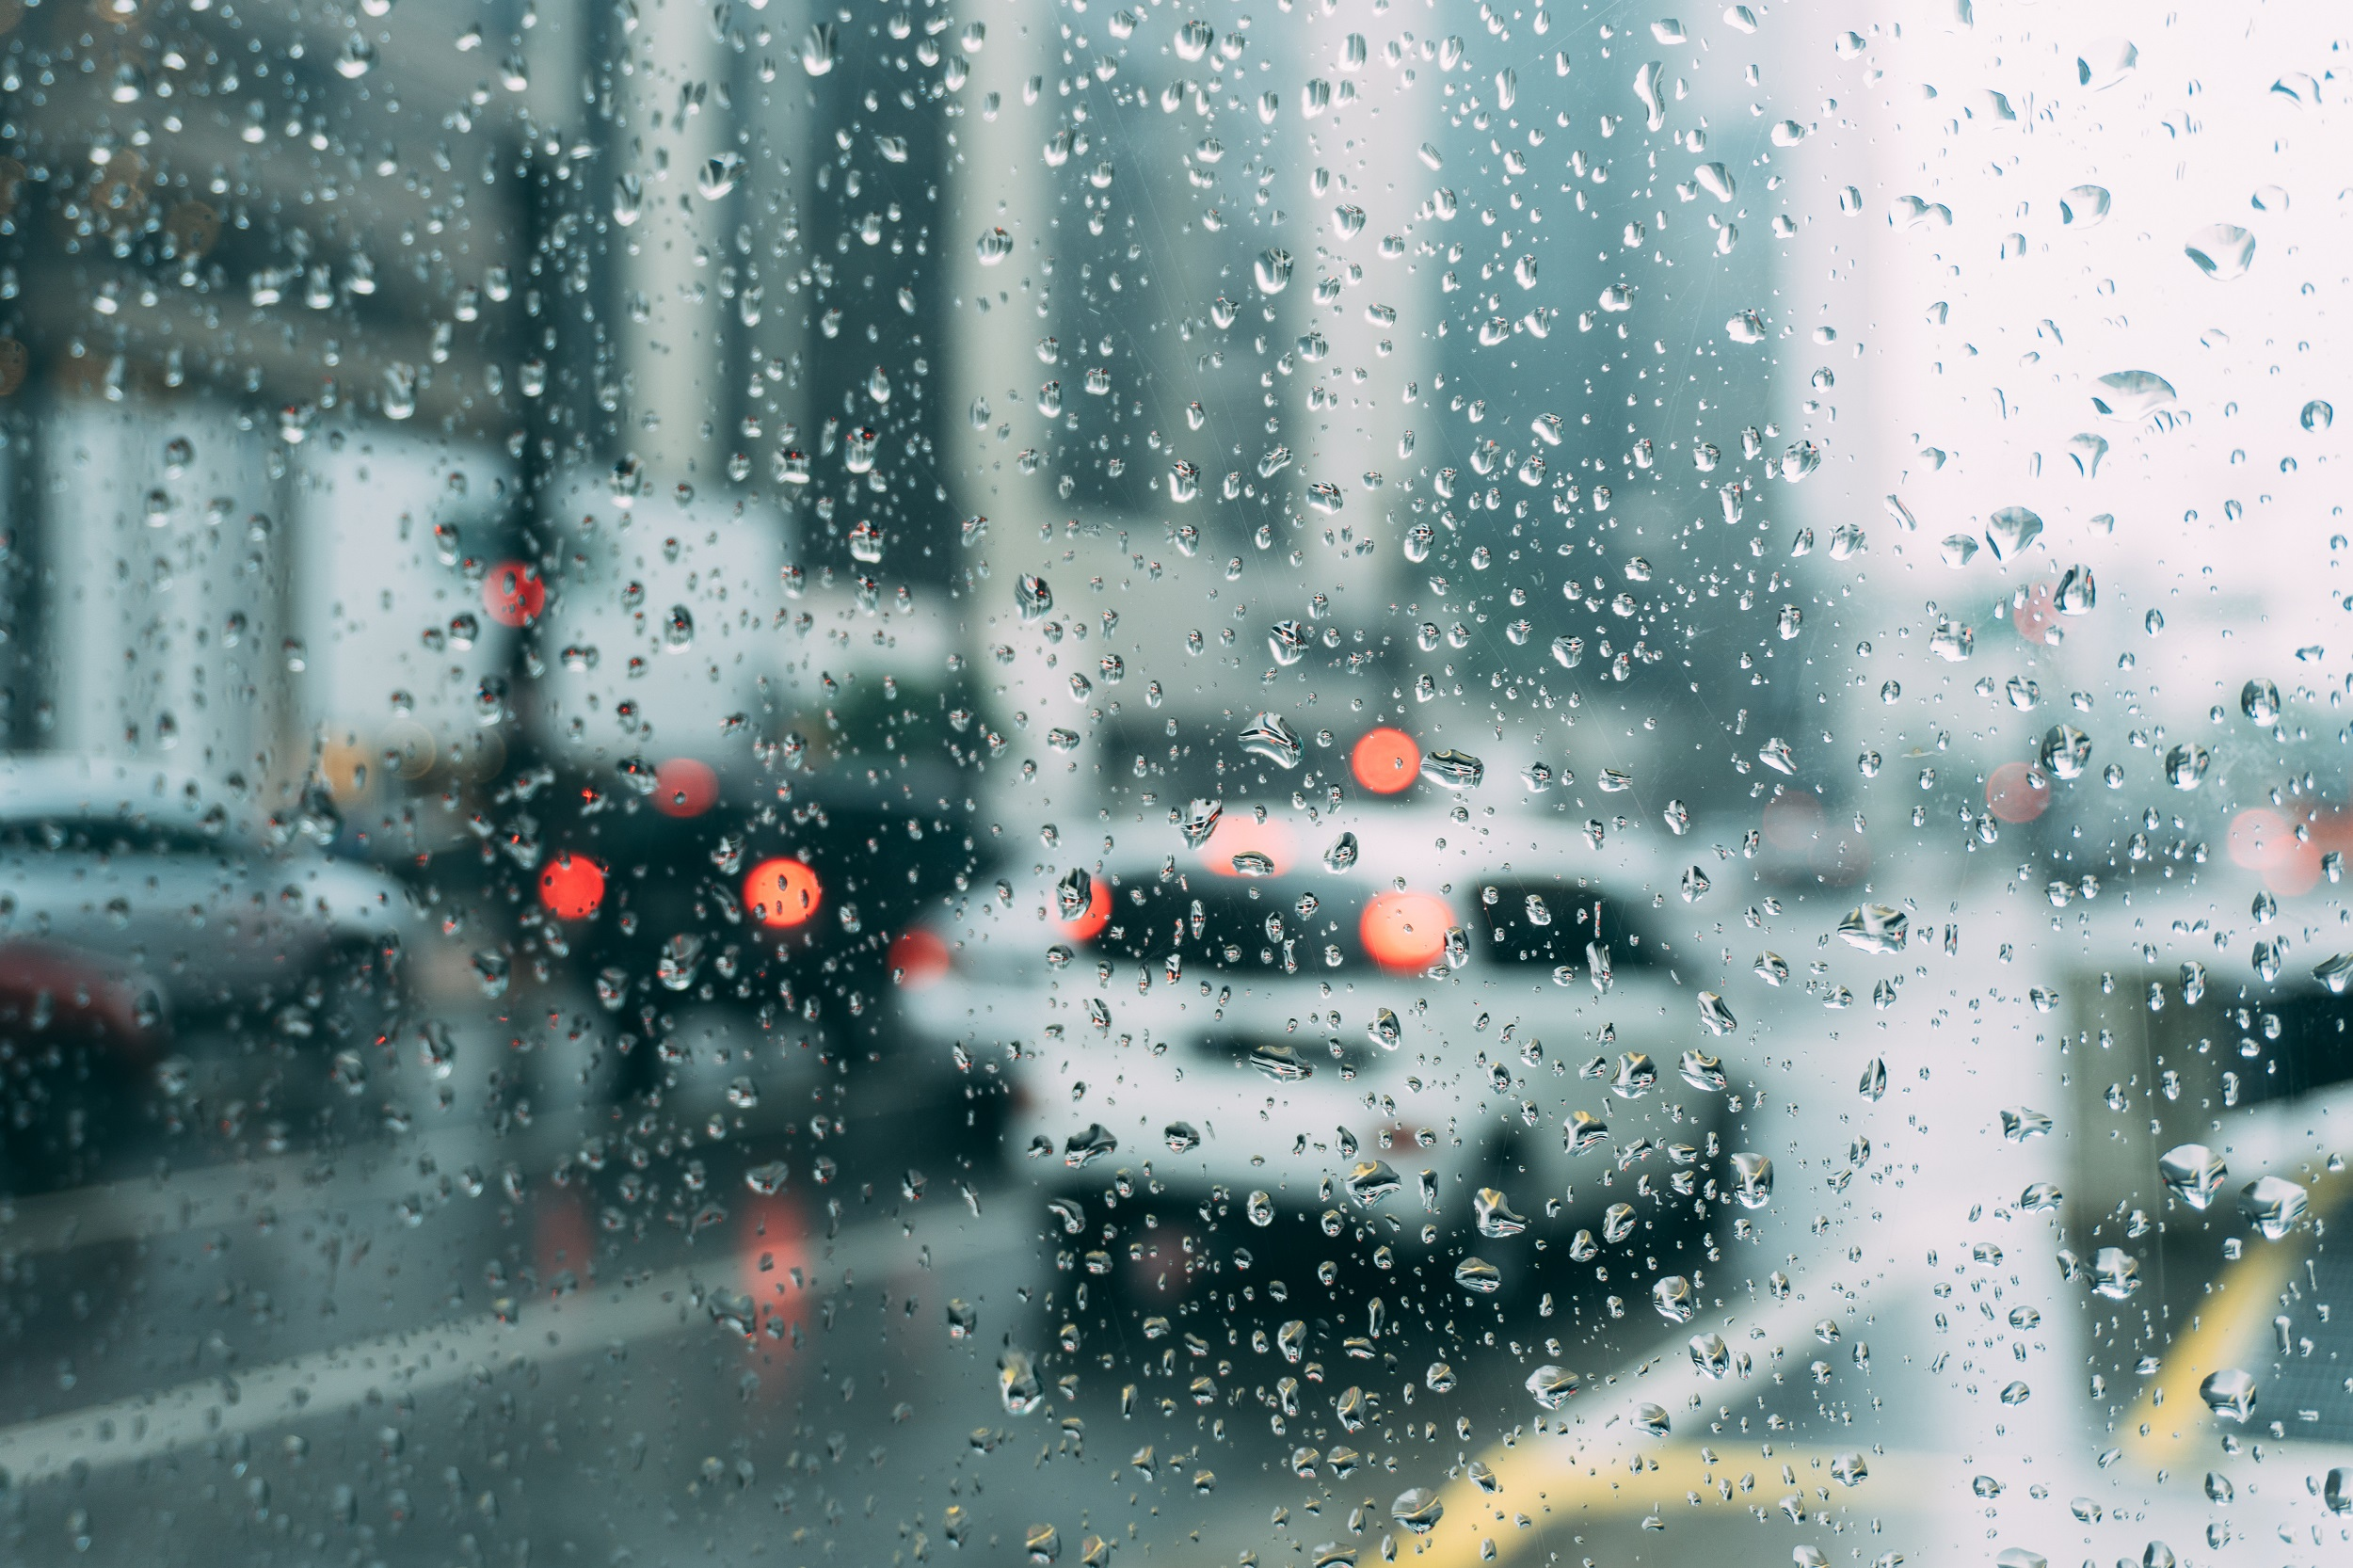 Photo_Web_Rain_Traffic_230318